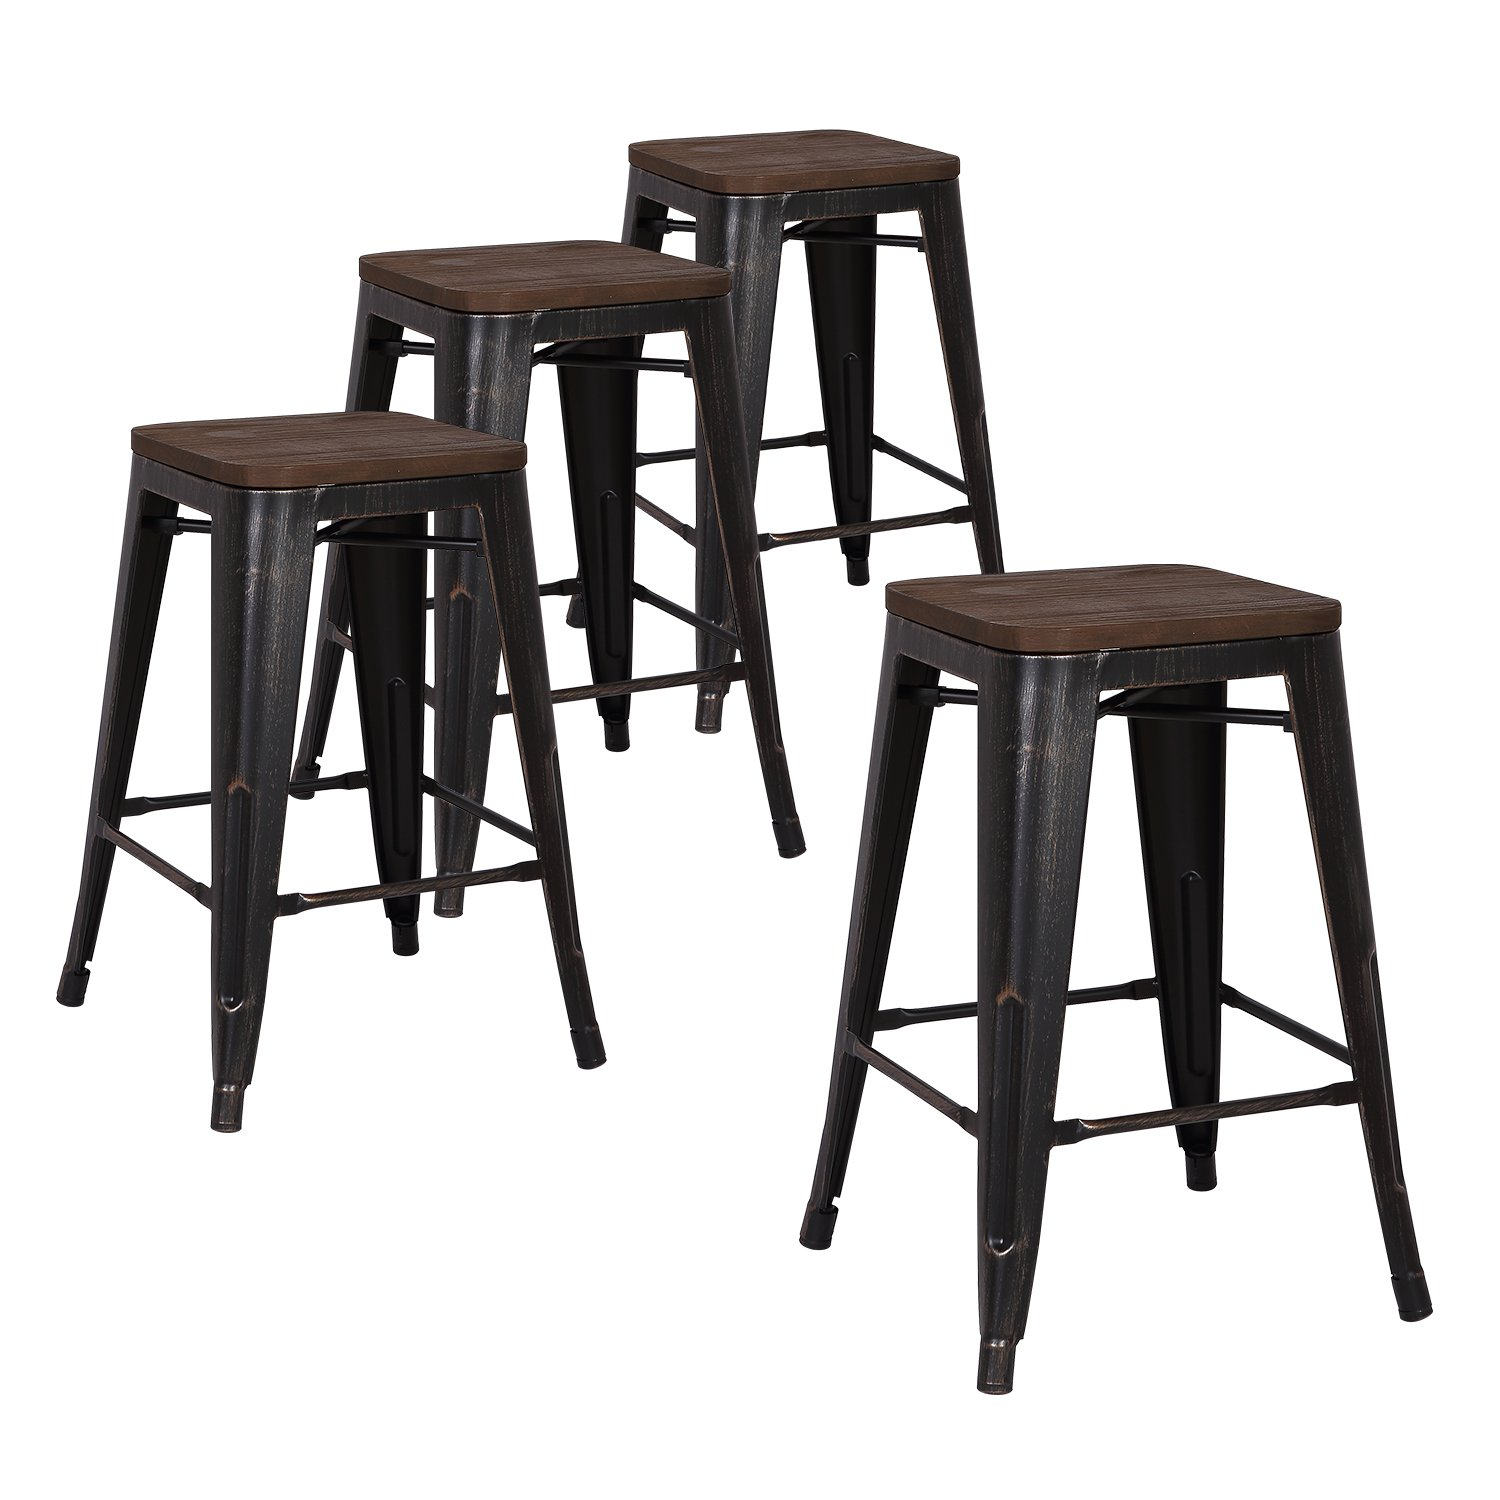 Details About Lch 30 Metal Industrial Counter Height Bar Stools Set Of 4 Backless